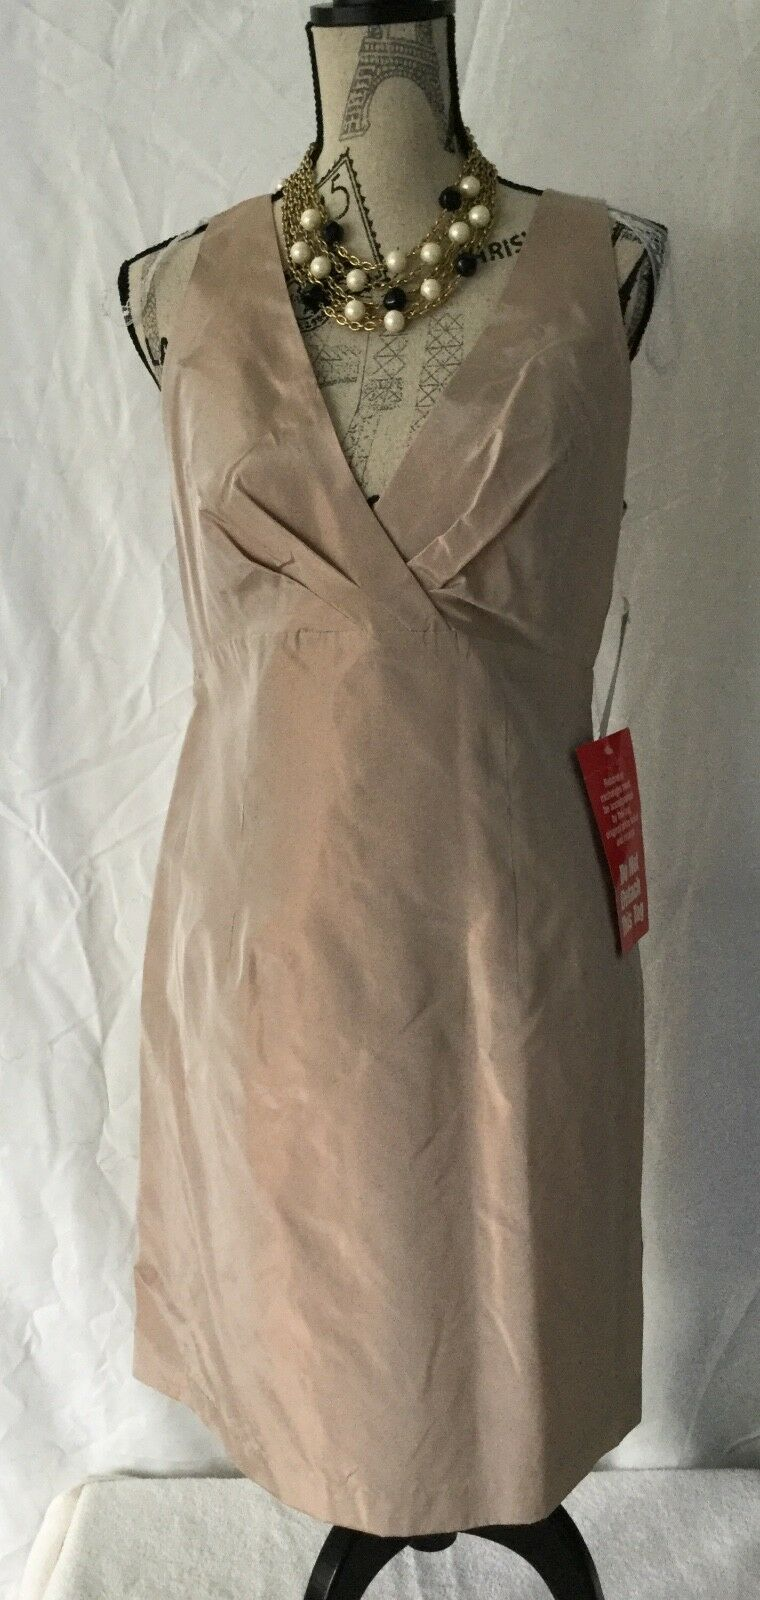 J. R. NITES by CALIENDO Empire DRESS in CARAMEL gold COLOR Sz 10 Sleeveless